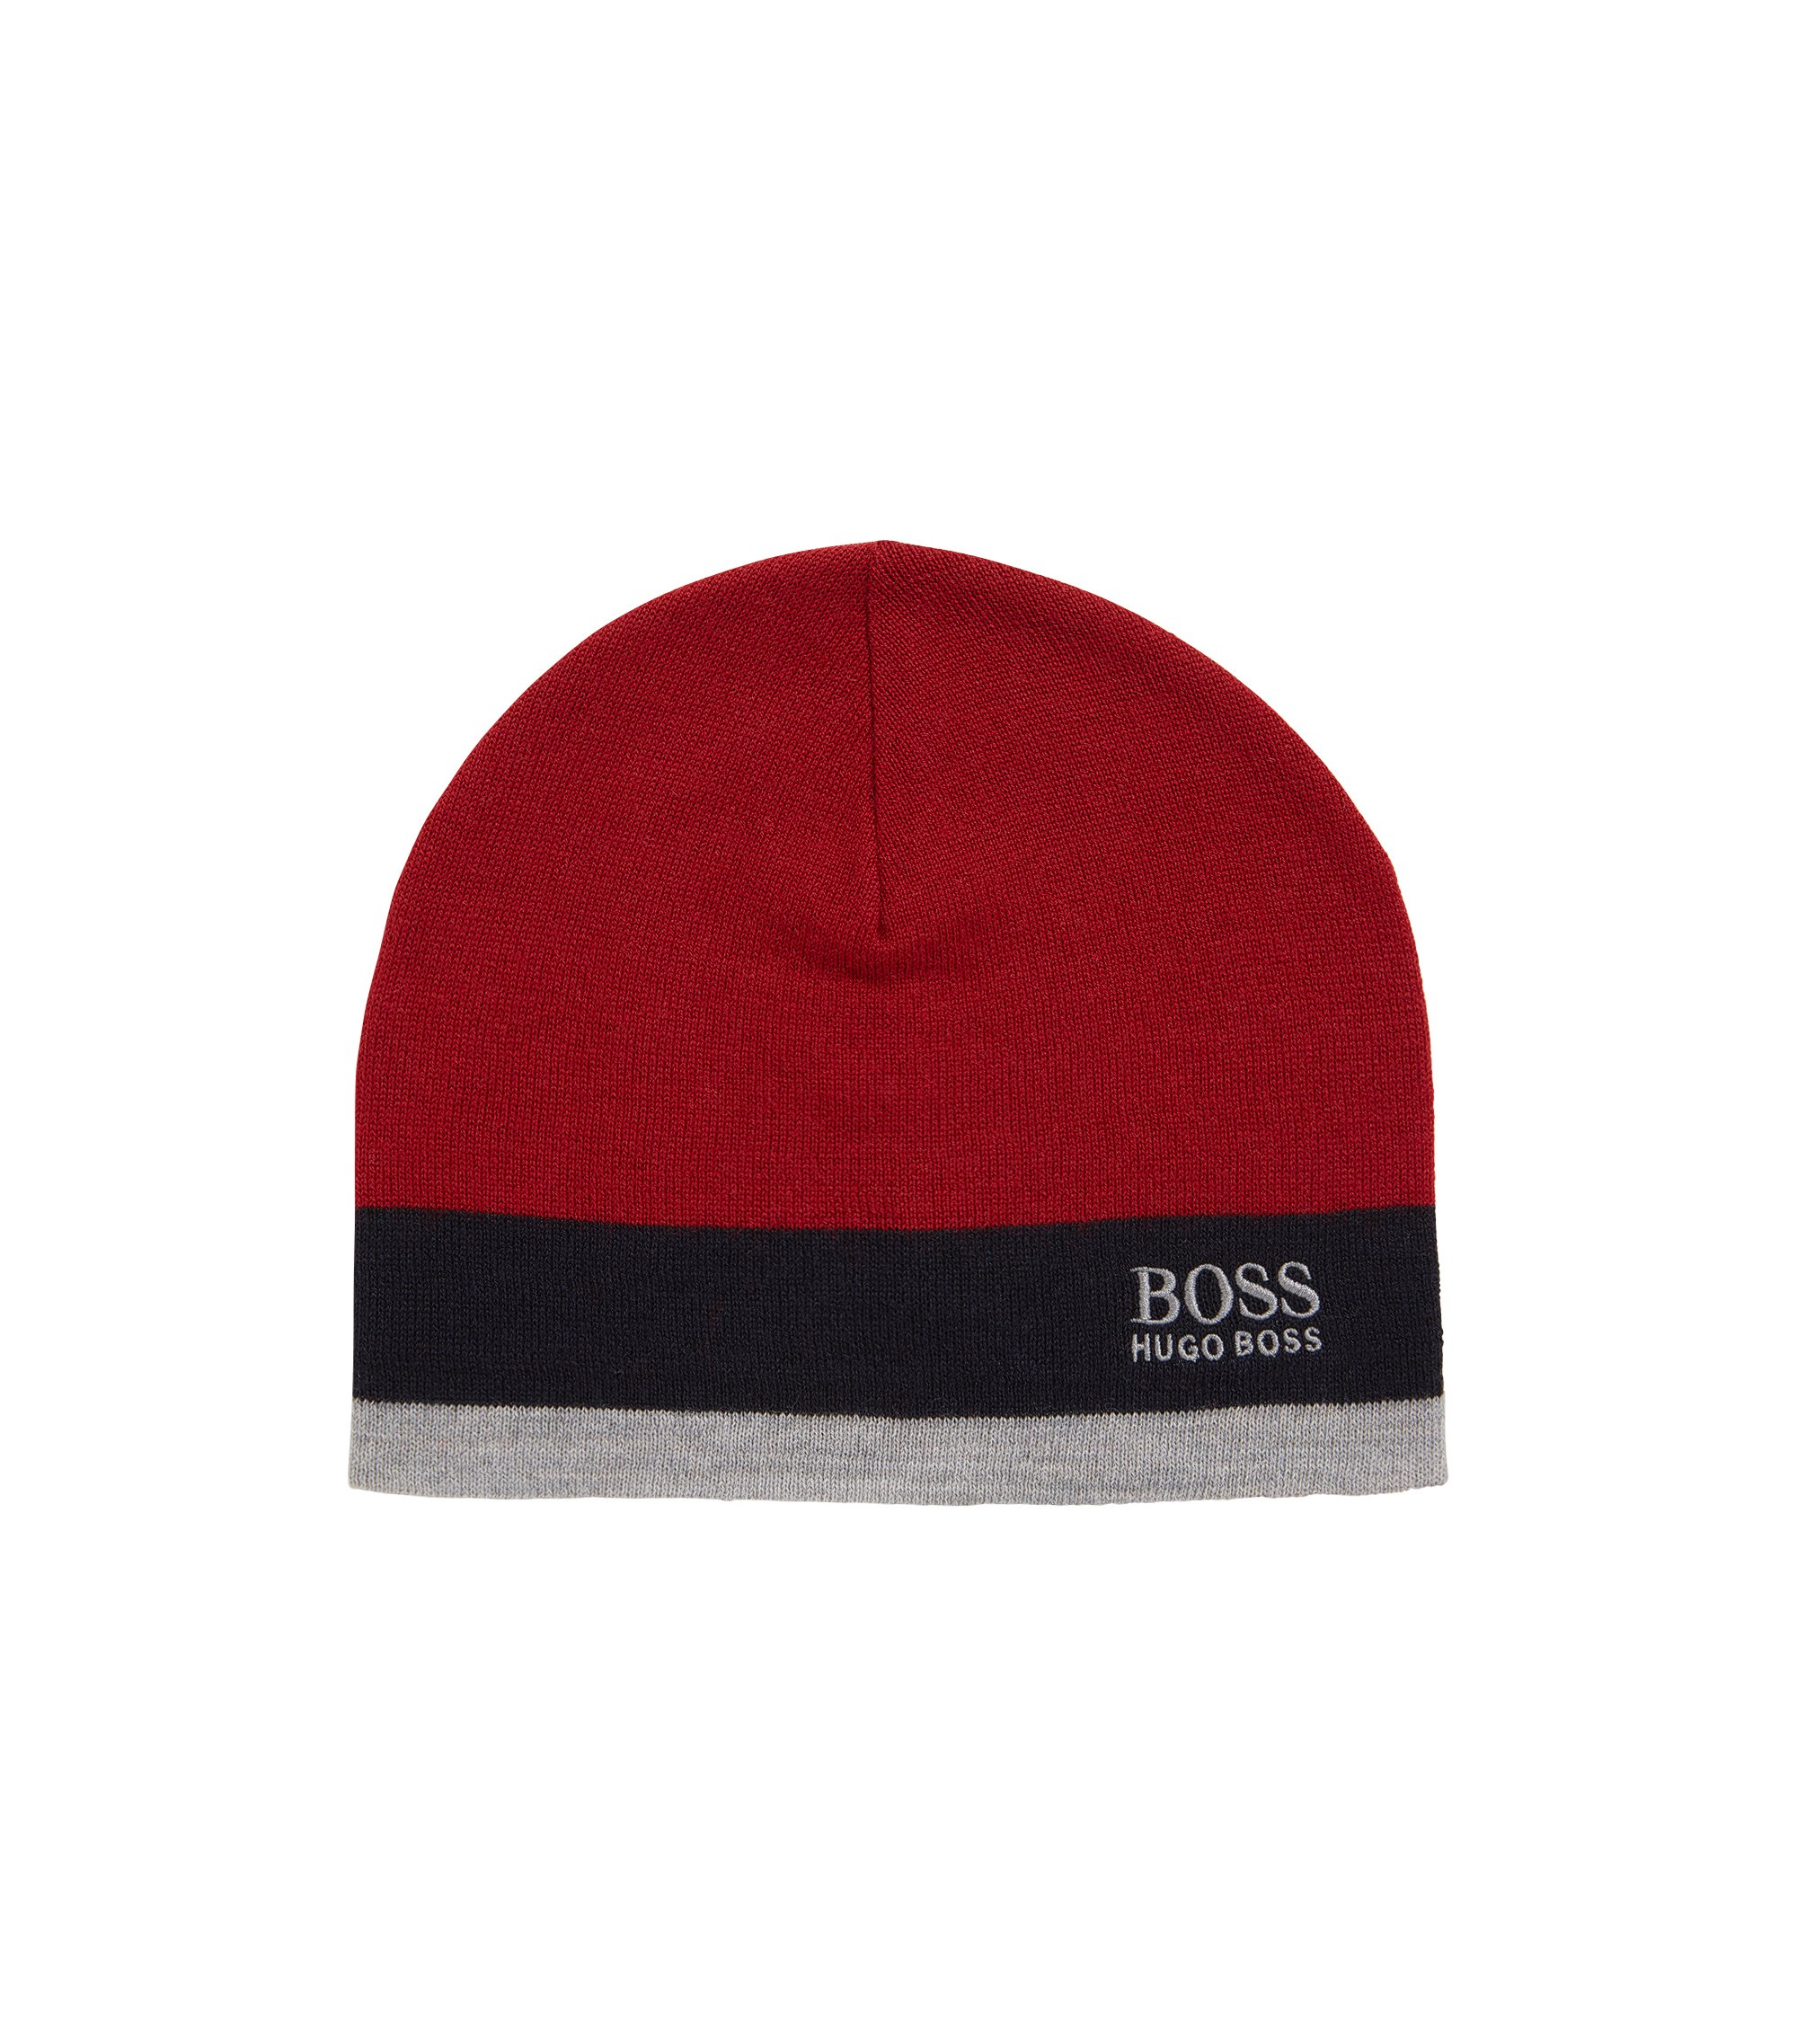 Colourblock beanie hat in wool blend, Red